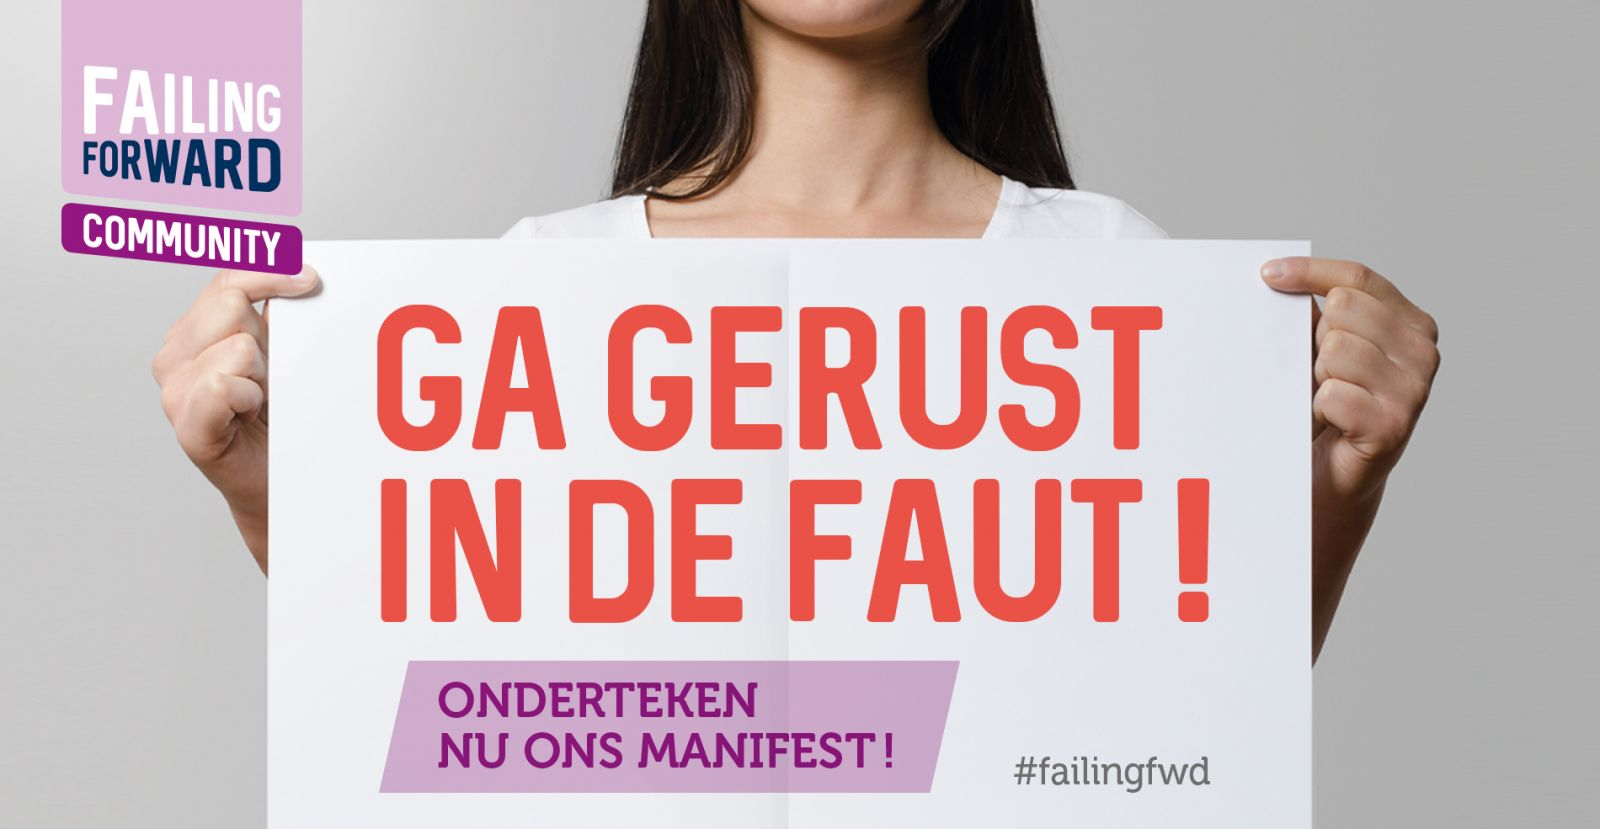 Failing Forward-campagne gestart